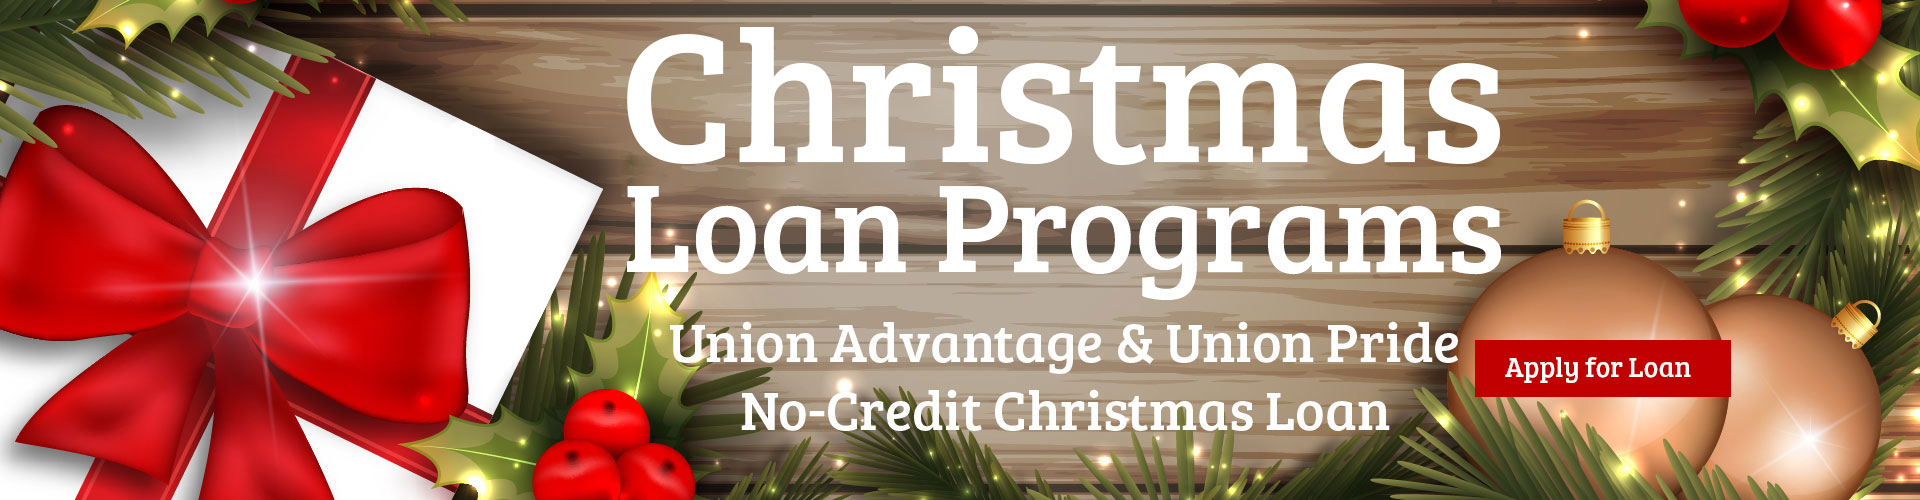 Christmas Loan Programs